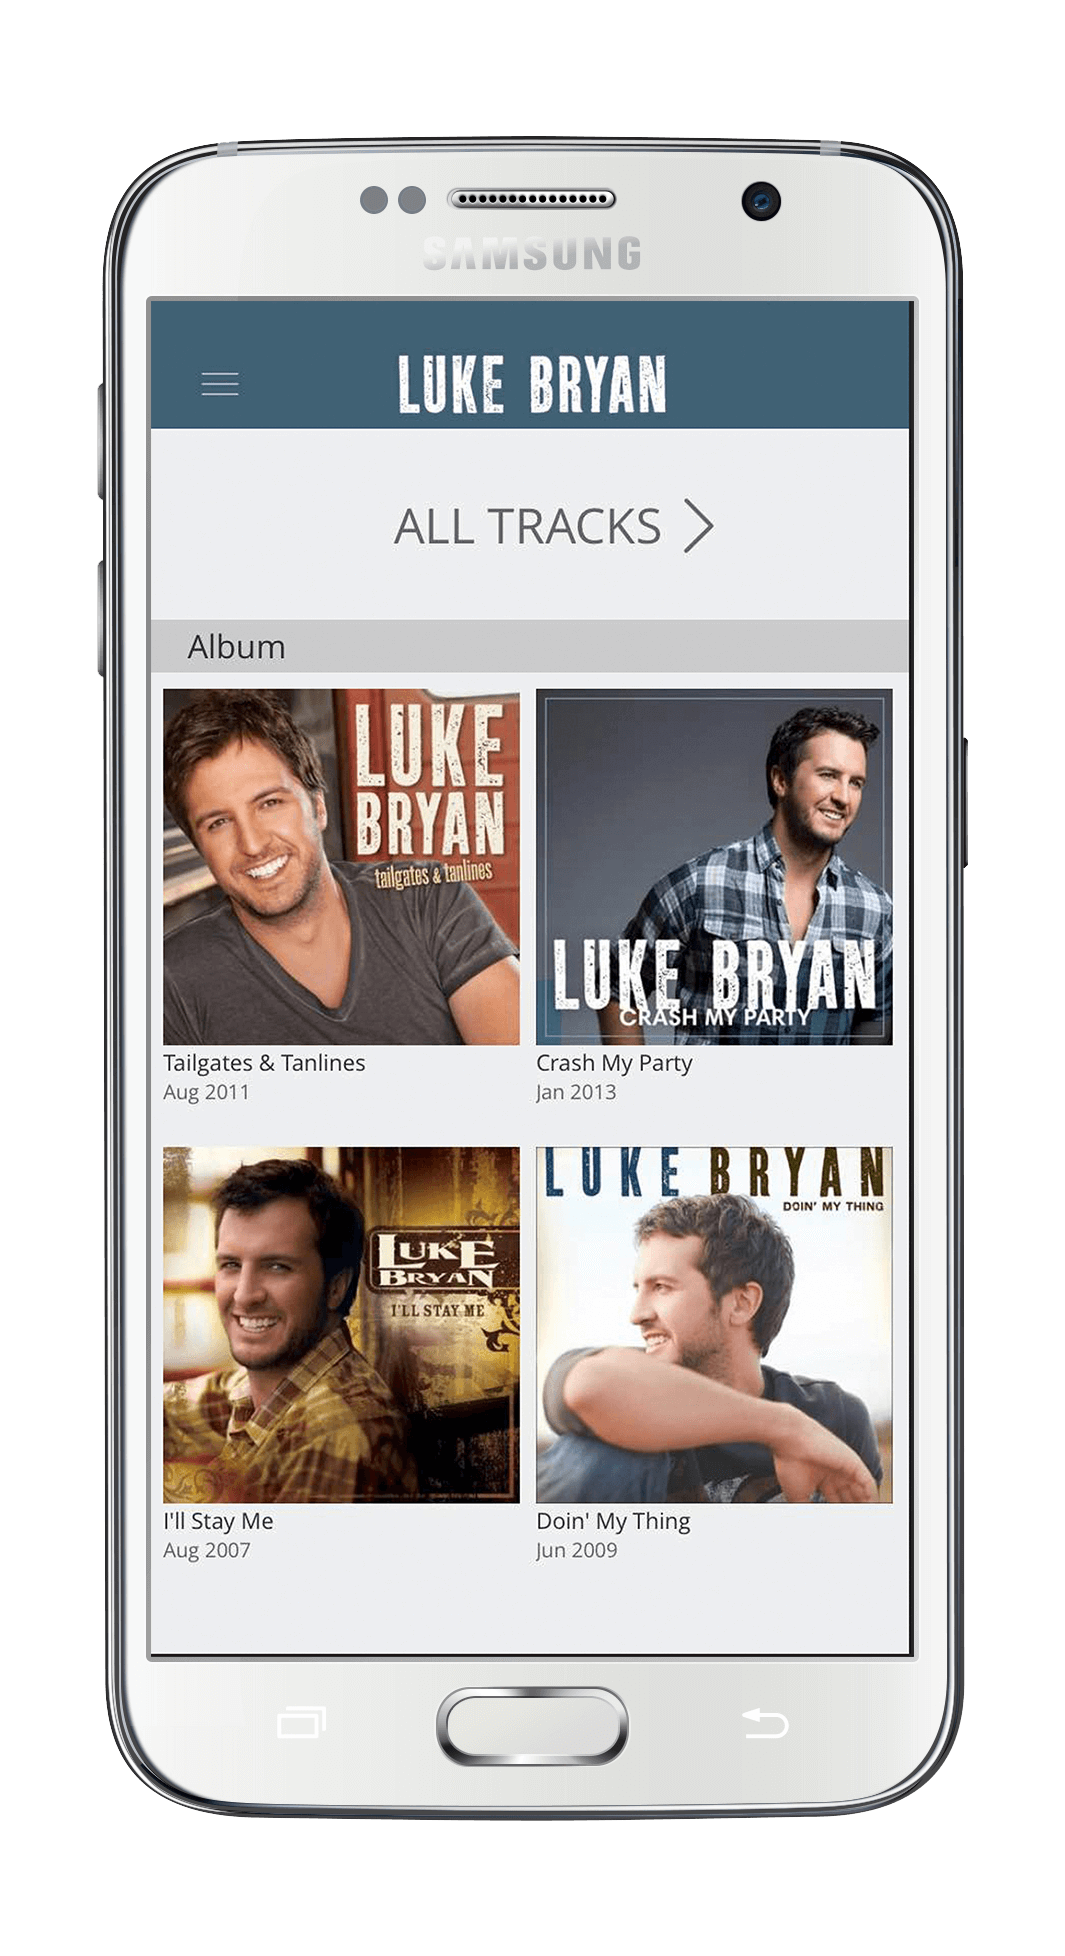 image of an iPhone showing a grid of 4 thumbnail pictures of Luke Bryan in various poses and clothing